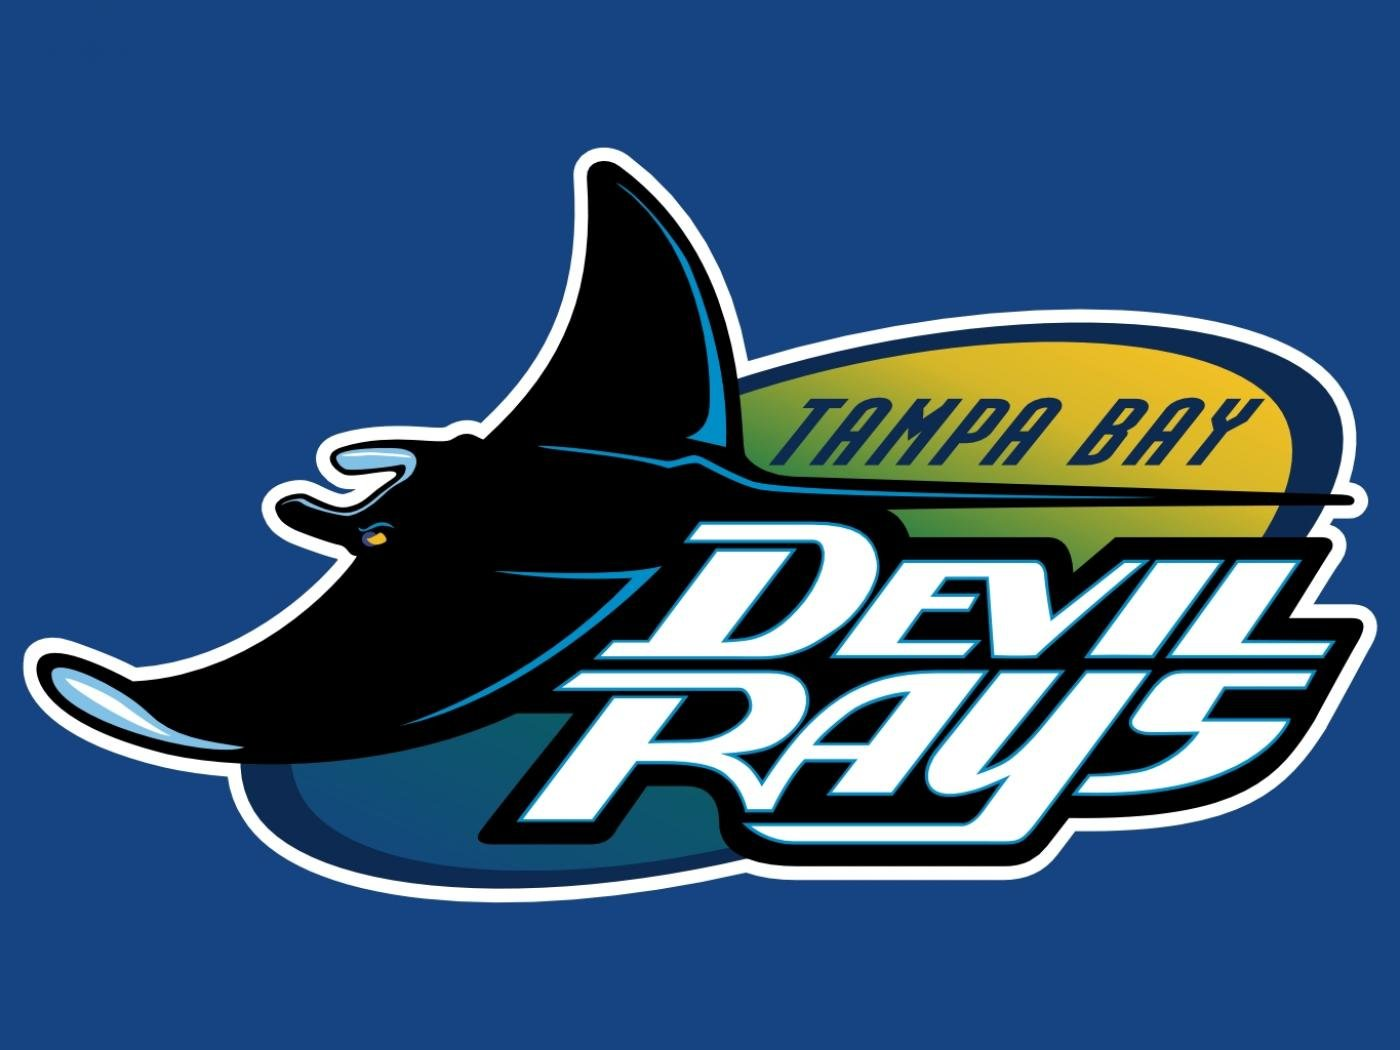 Tampa Bay Rays Wallpapers Hd For Desktop Backgrounds